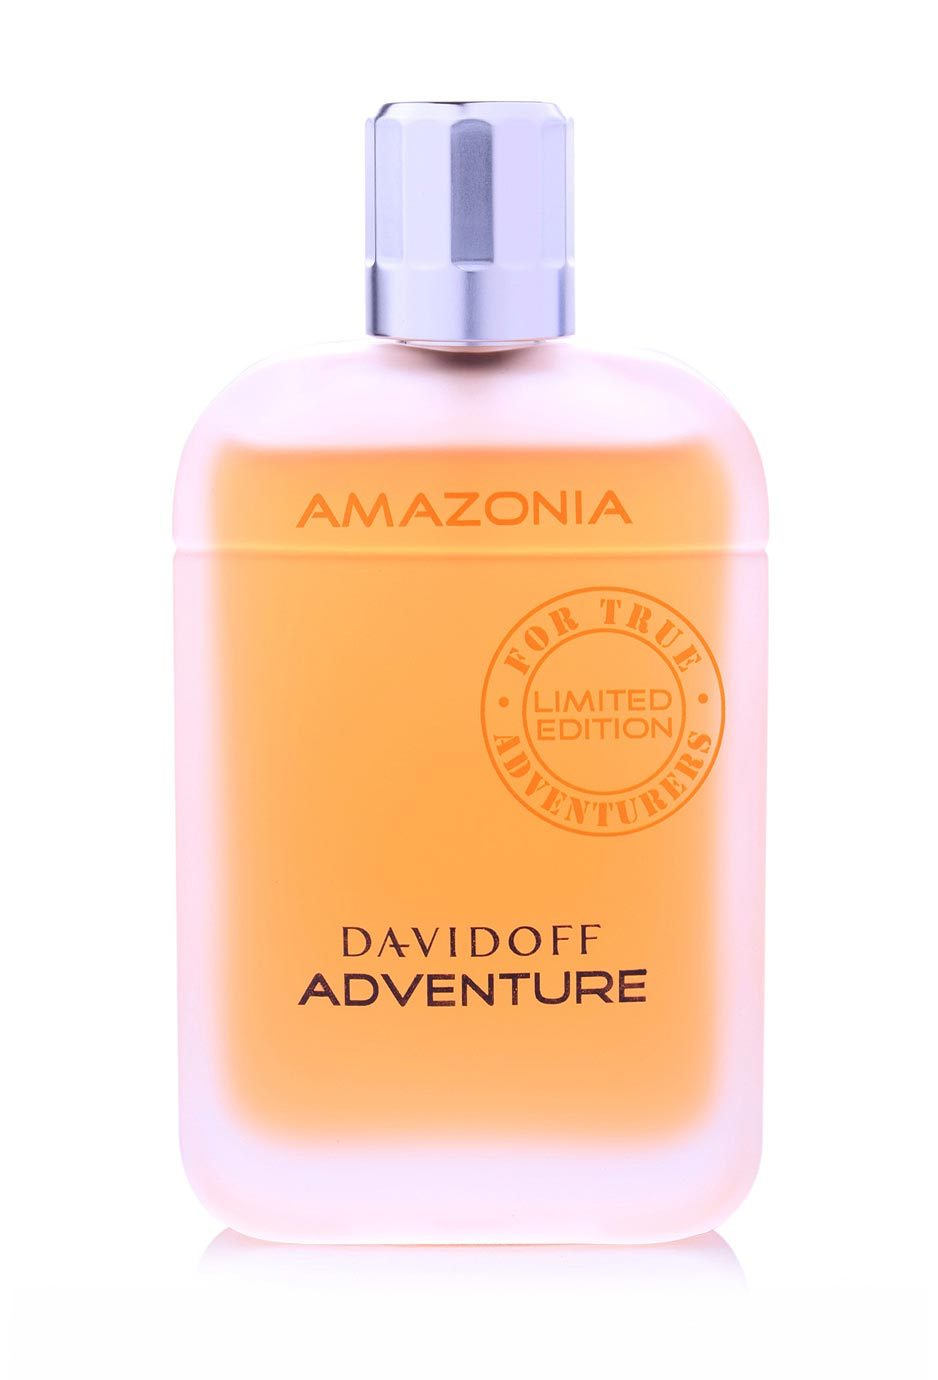 Davidoff Adventure Amazonia Eau de toilette 100ml